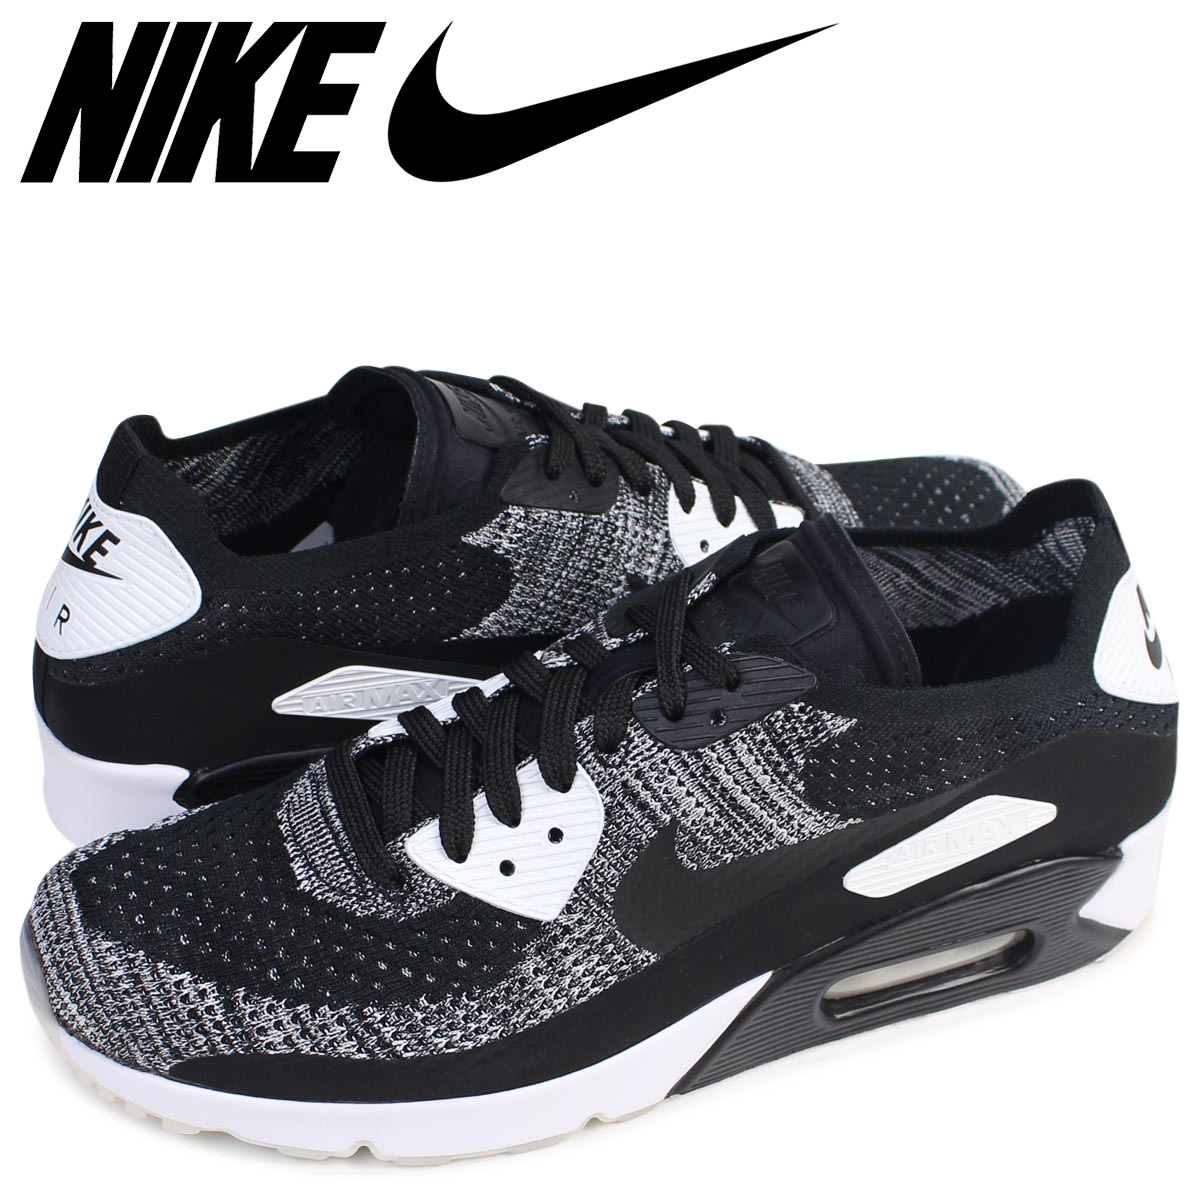 nike air max 90 ultra 2.0 flyknit black